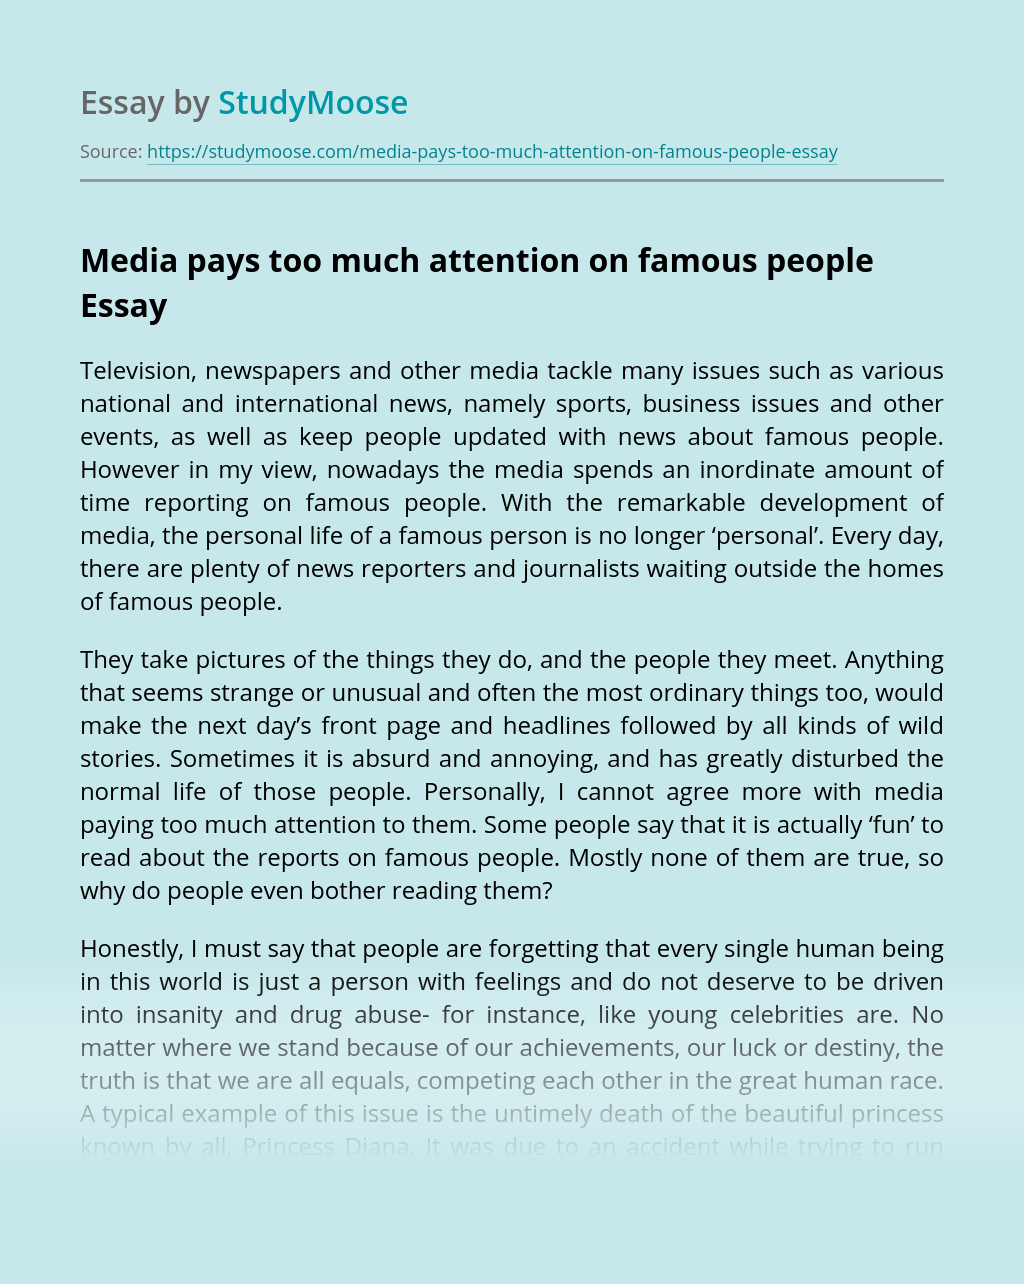 Media pays too much attention on famous people